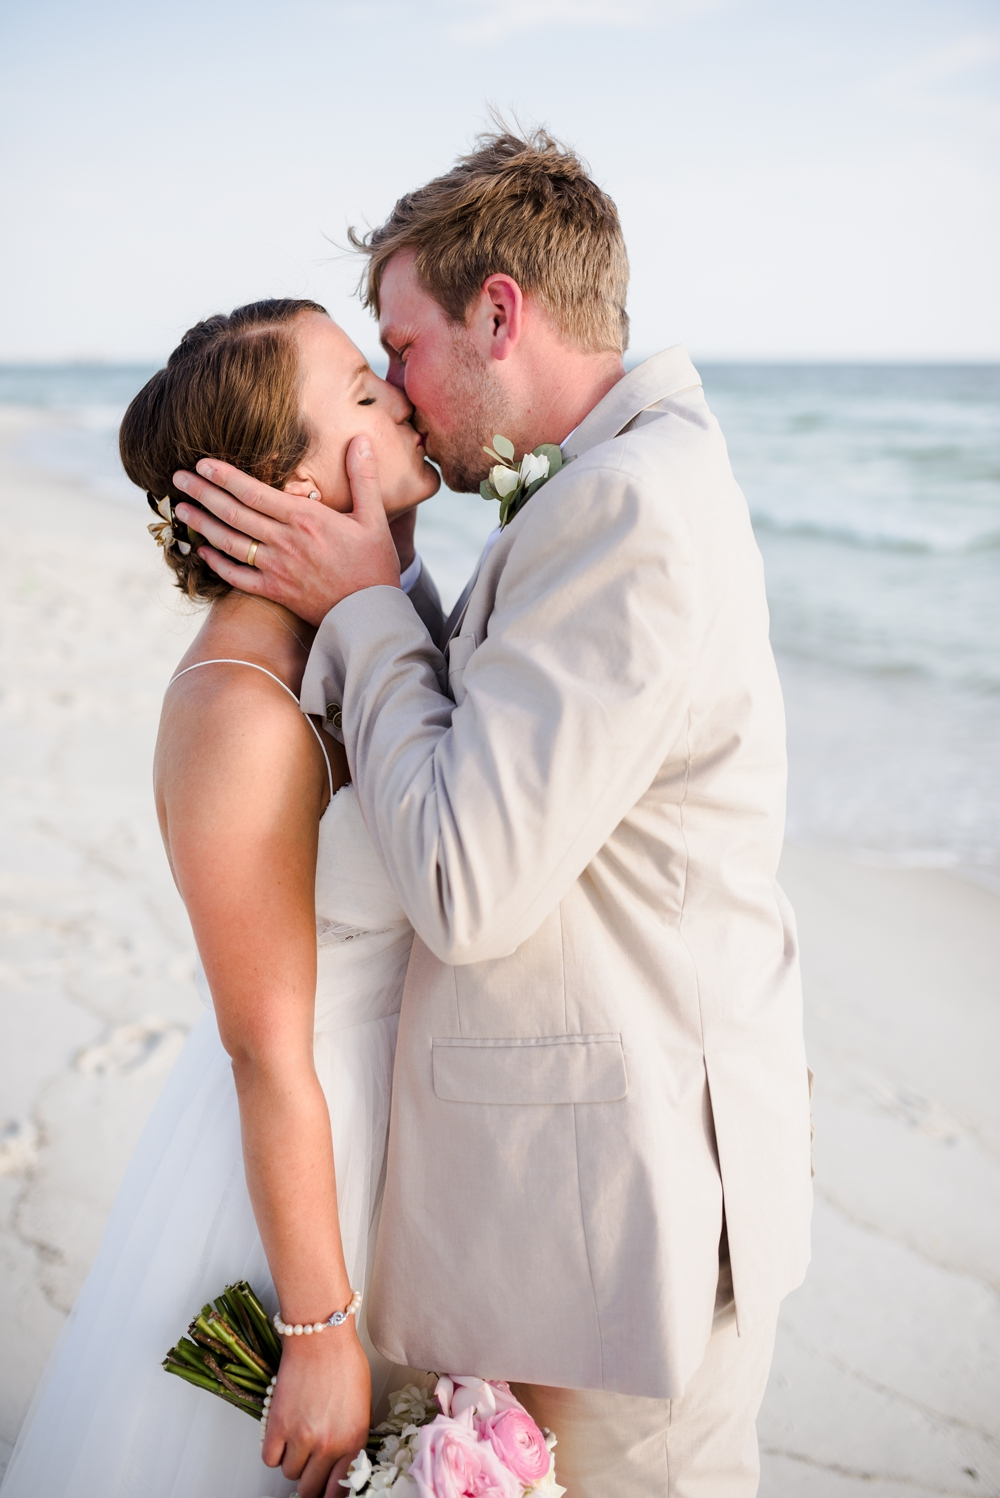 florida-wedding-photographer-kiersten-grant-90.jpg